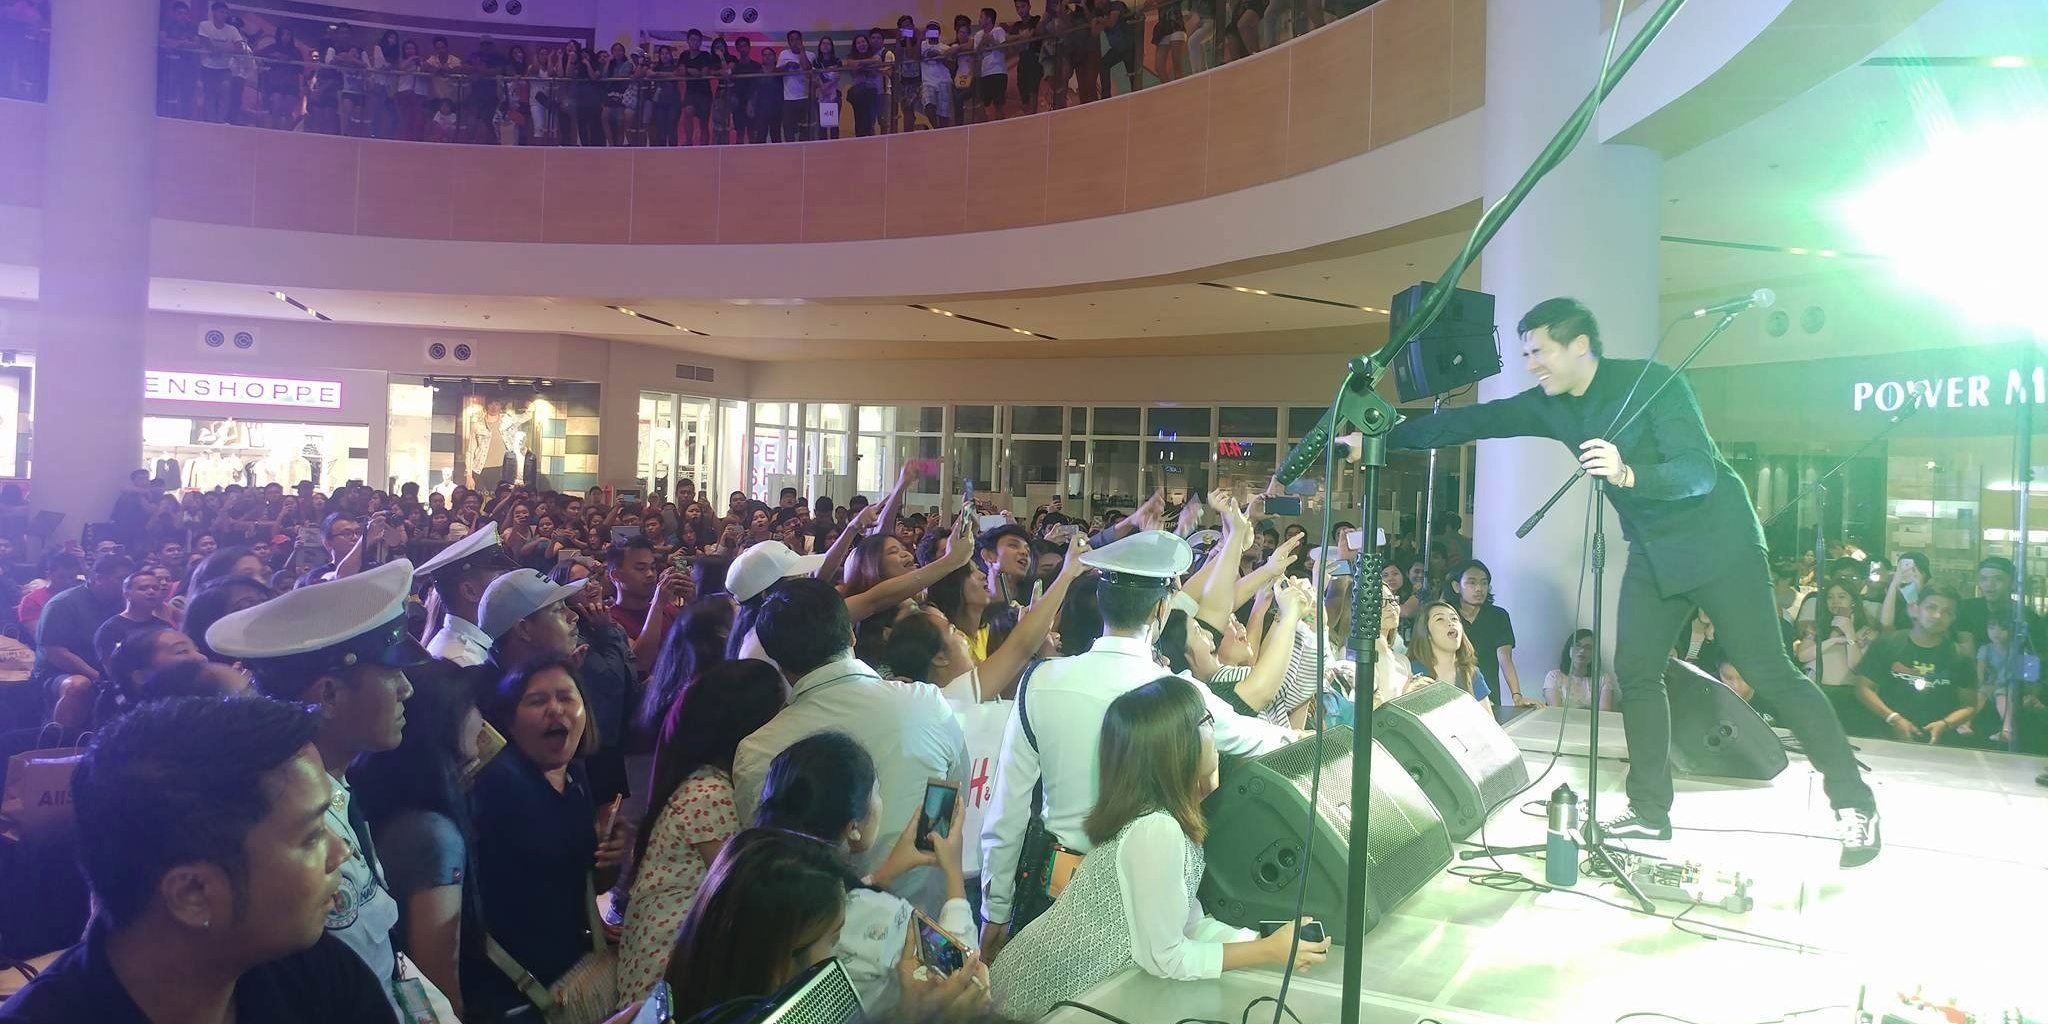 Hale takes us into the crazy fun world of Filipino mall shows